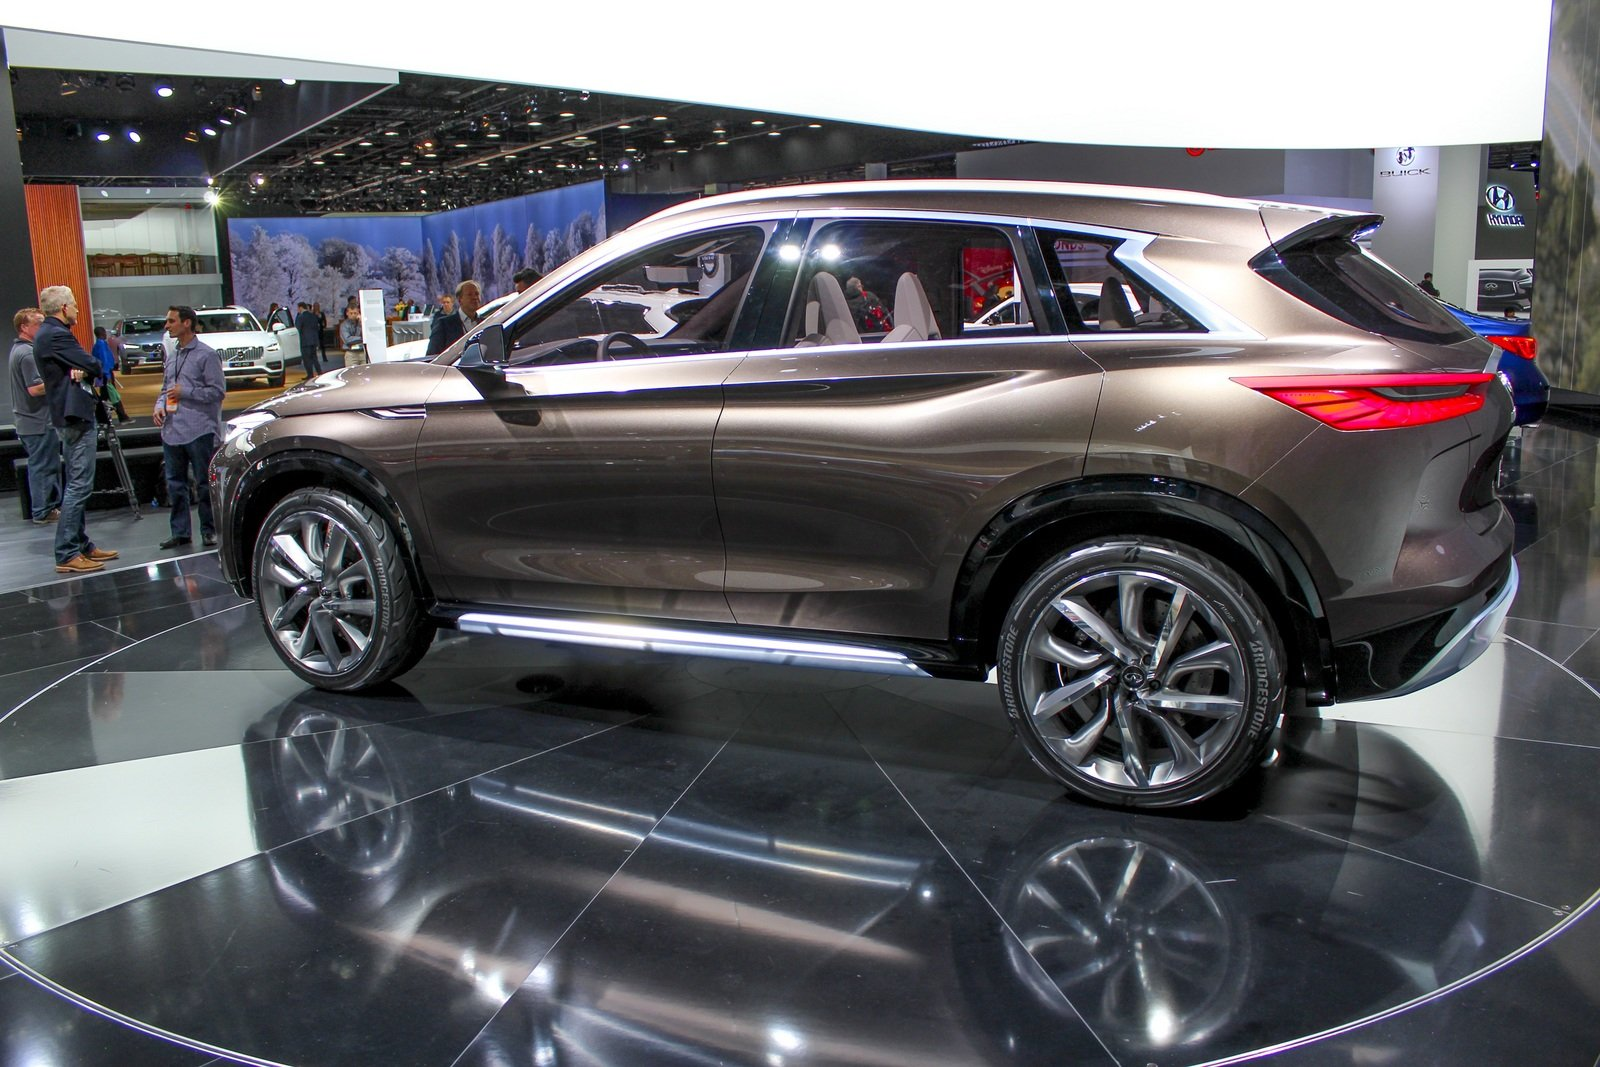 2017 infiniti qx50 concept picture 702015 car review top speed. Black Bedroom Furniture Sets. Home Design Ideas